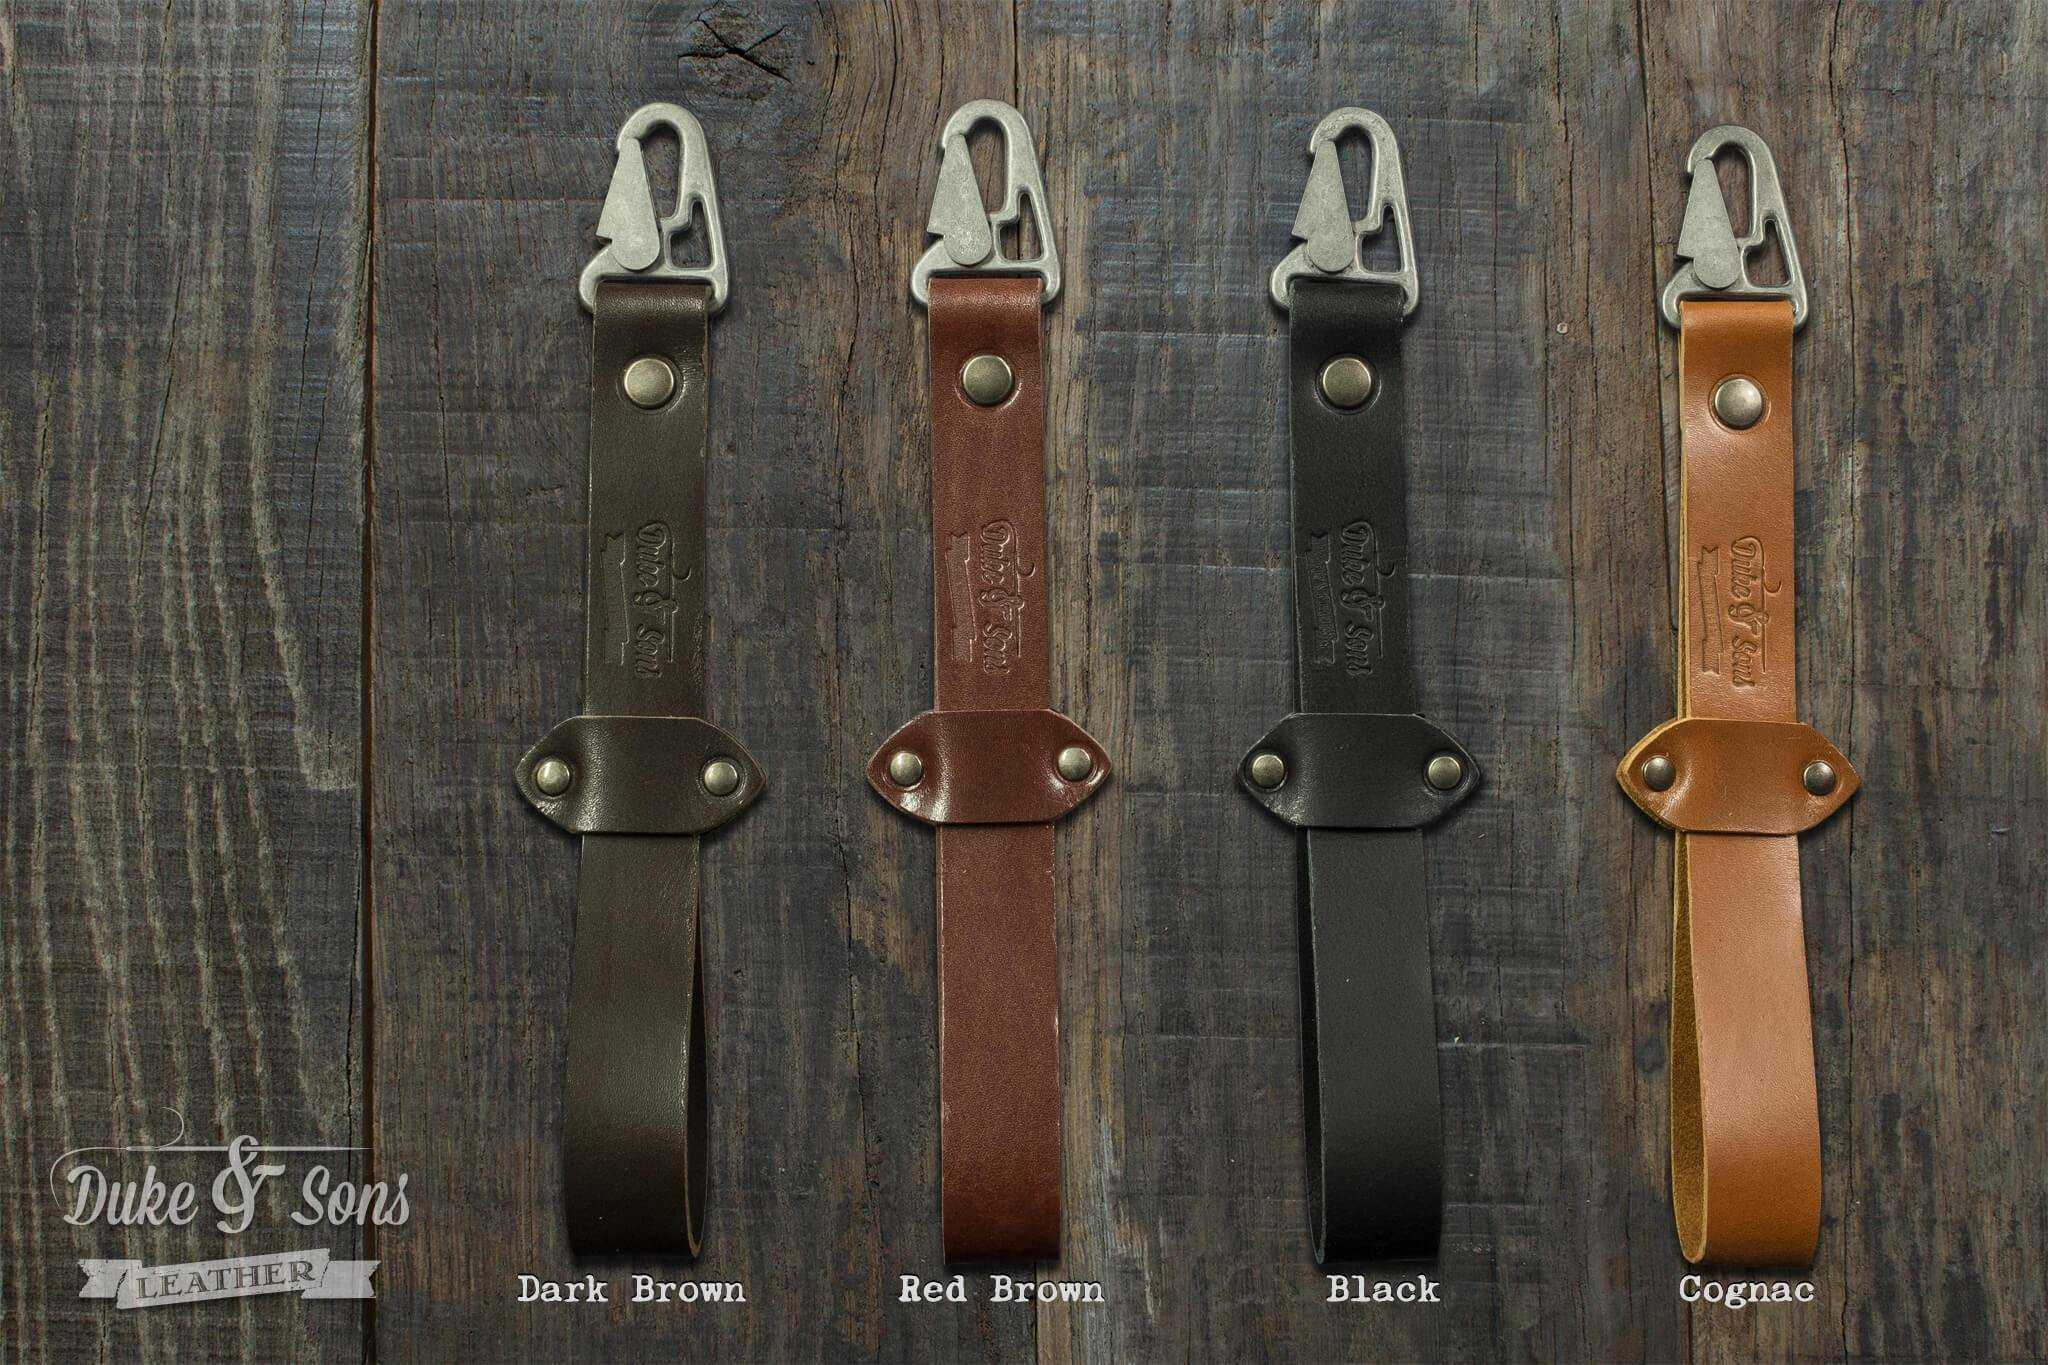 Glove strap, leather strap to keep your gloves with you | Duke & Sons Leather